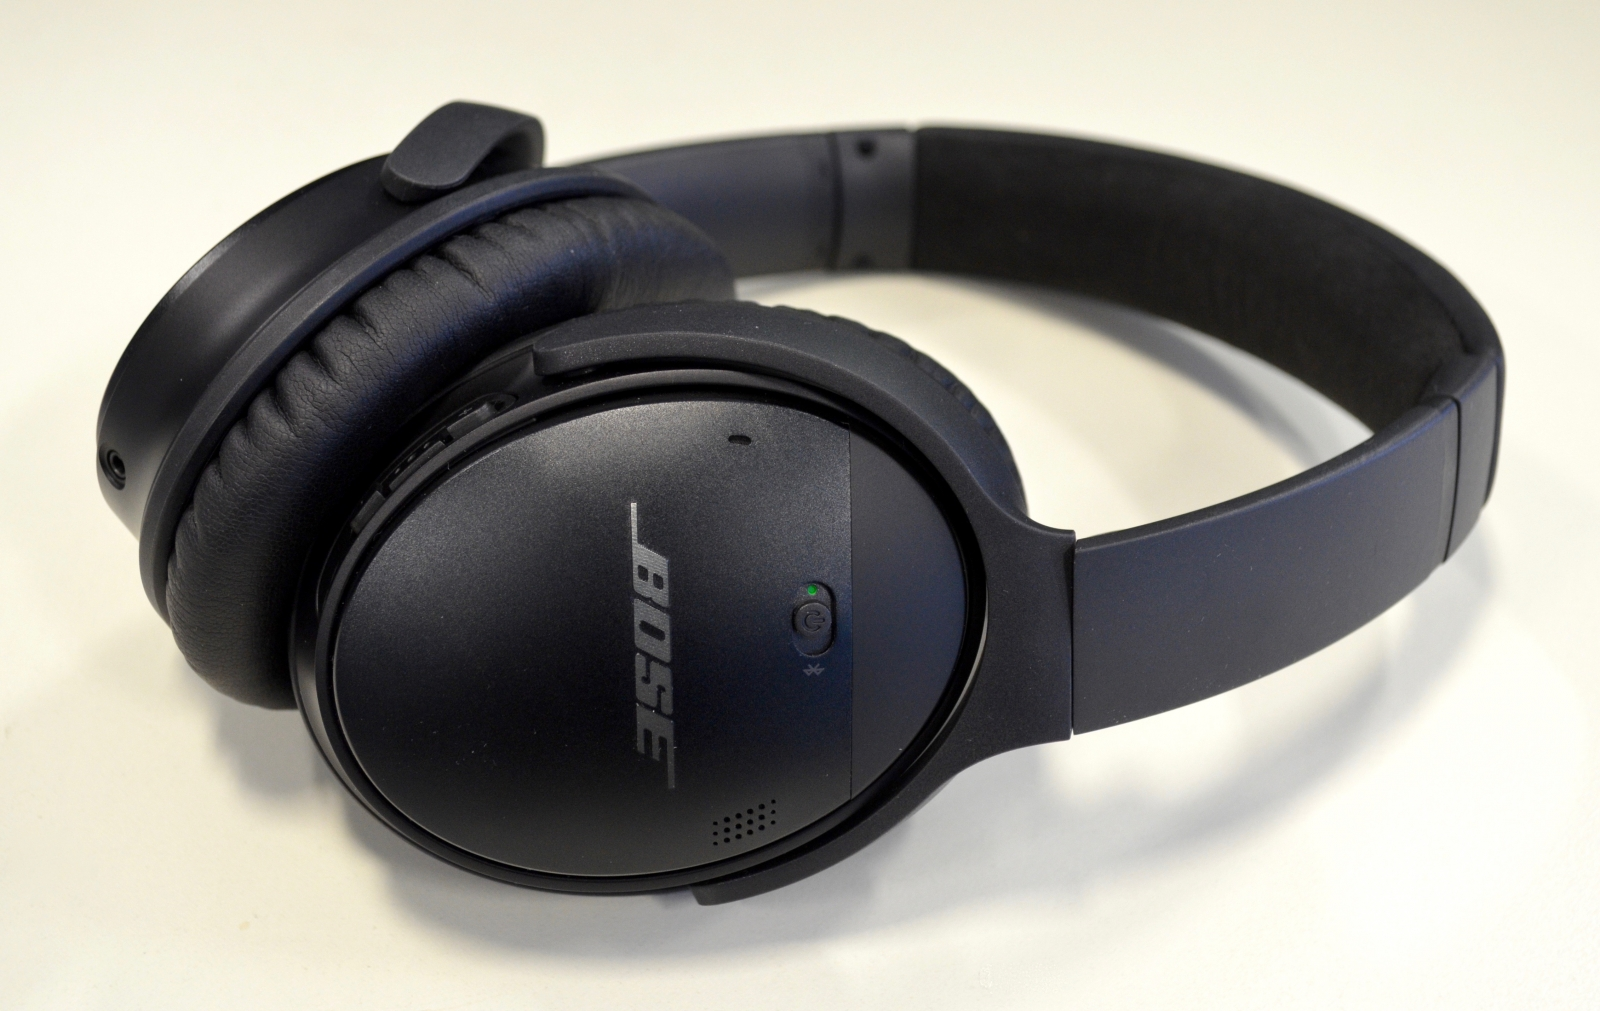 Bose Quietcomfort 35 Review The Wireless Noise